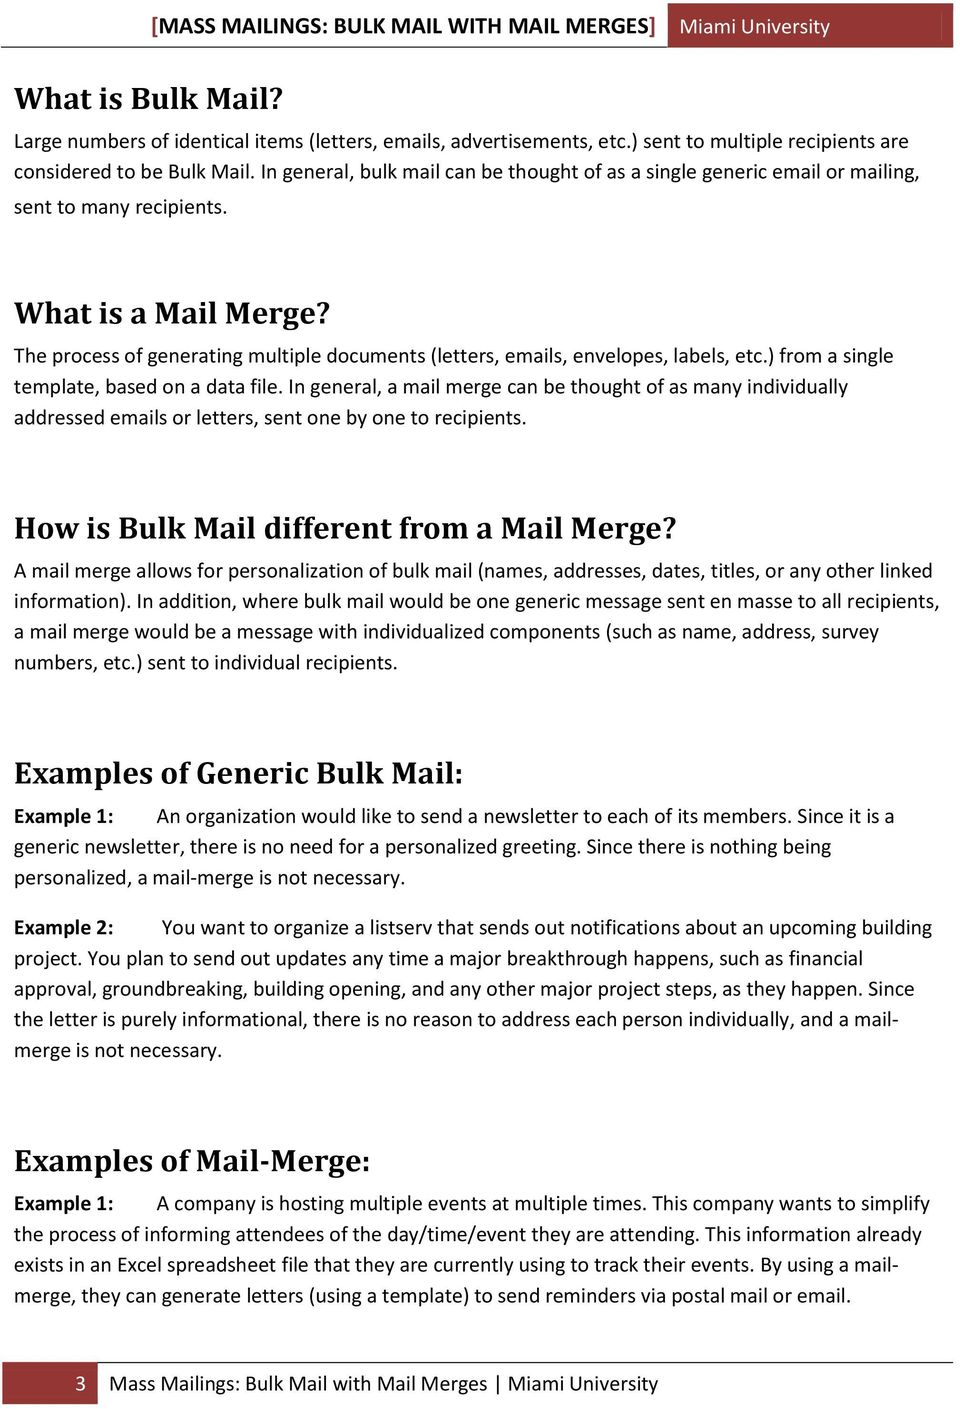 The process of generating multiple documents (letters, emails, envelopes, labels, etc.) from a single template, based on a data file.